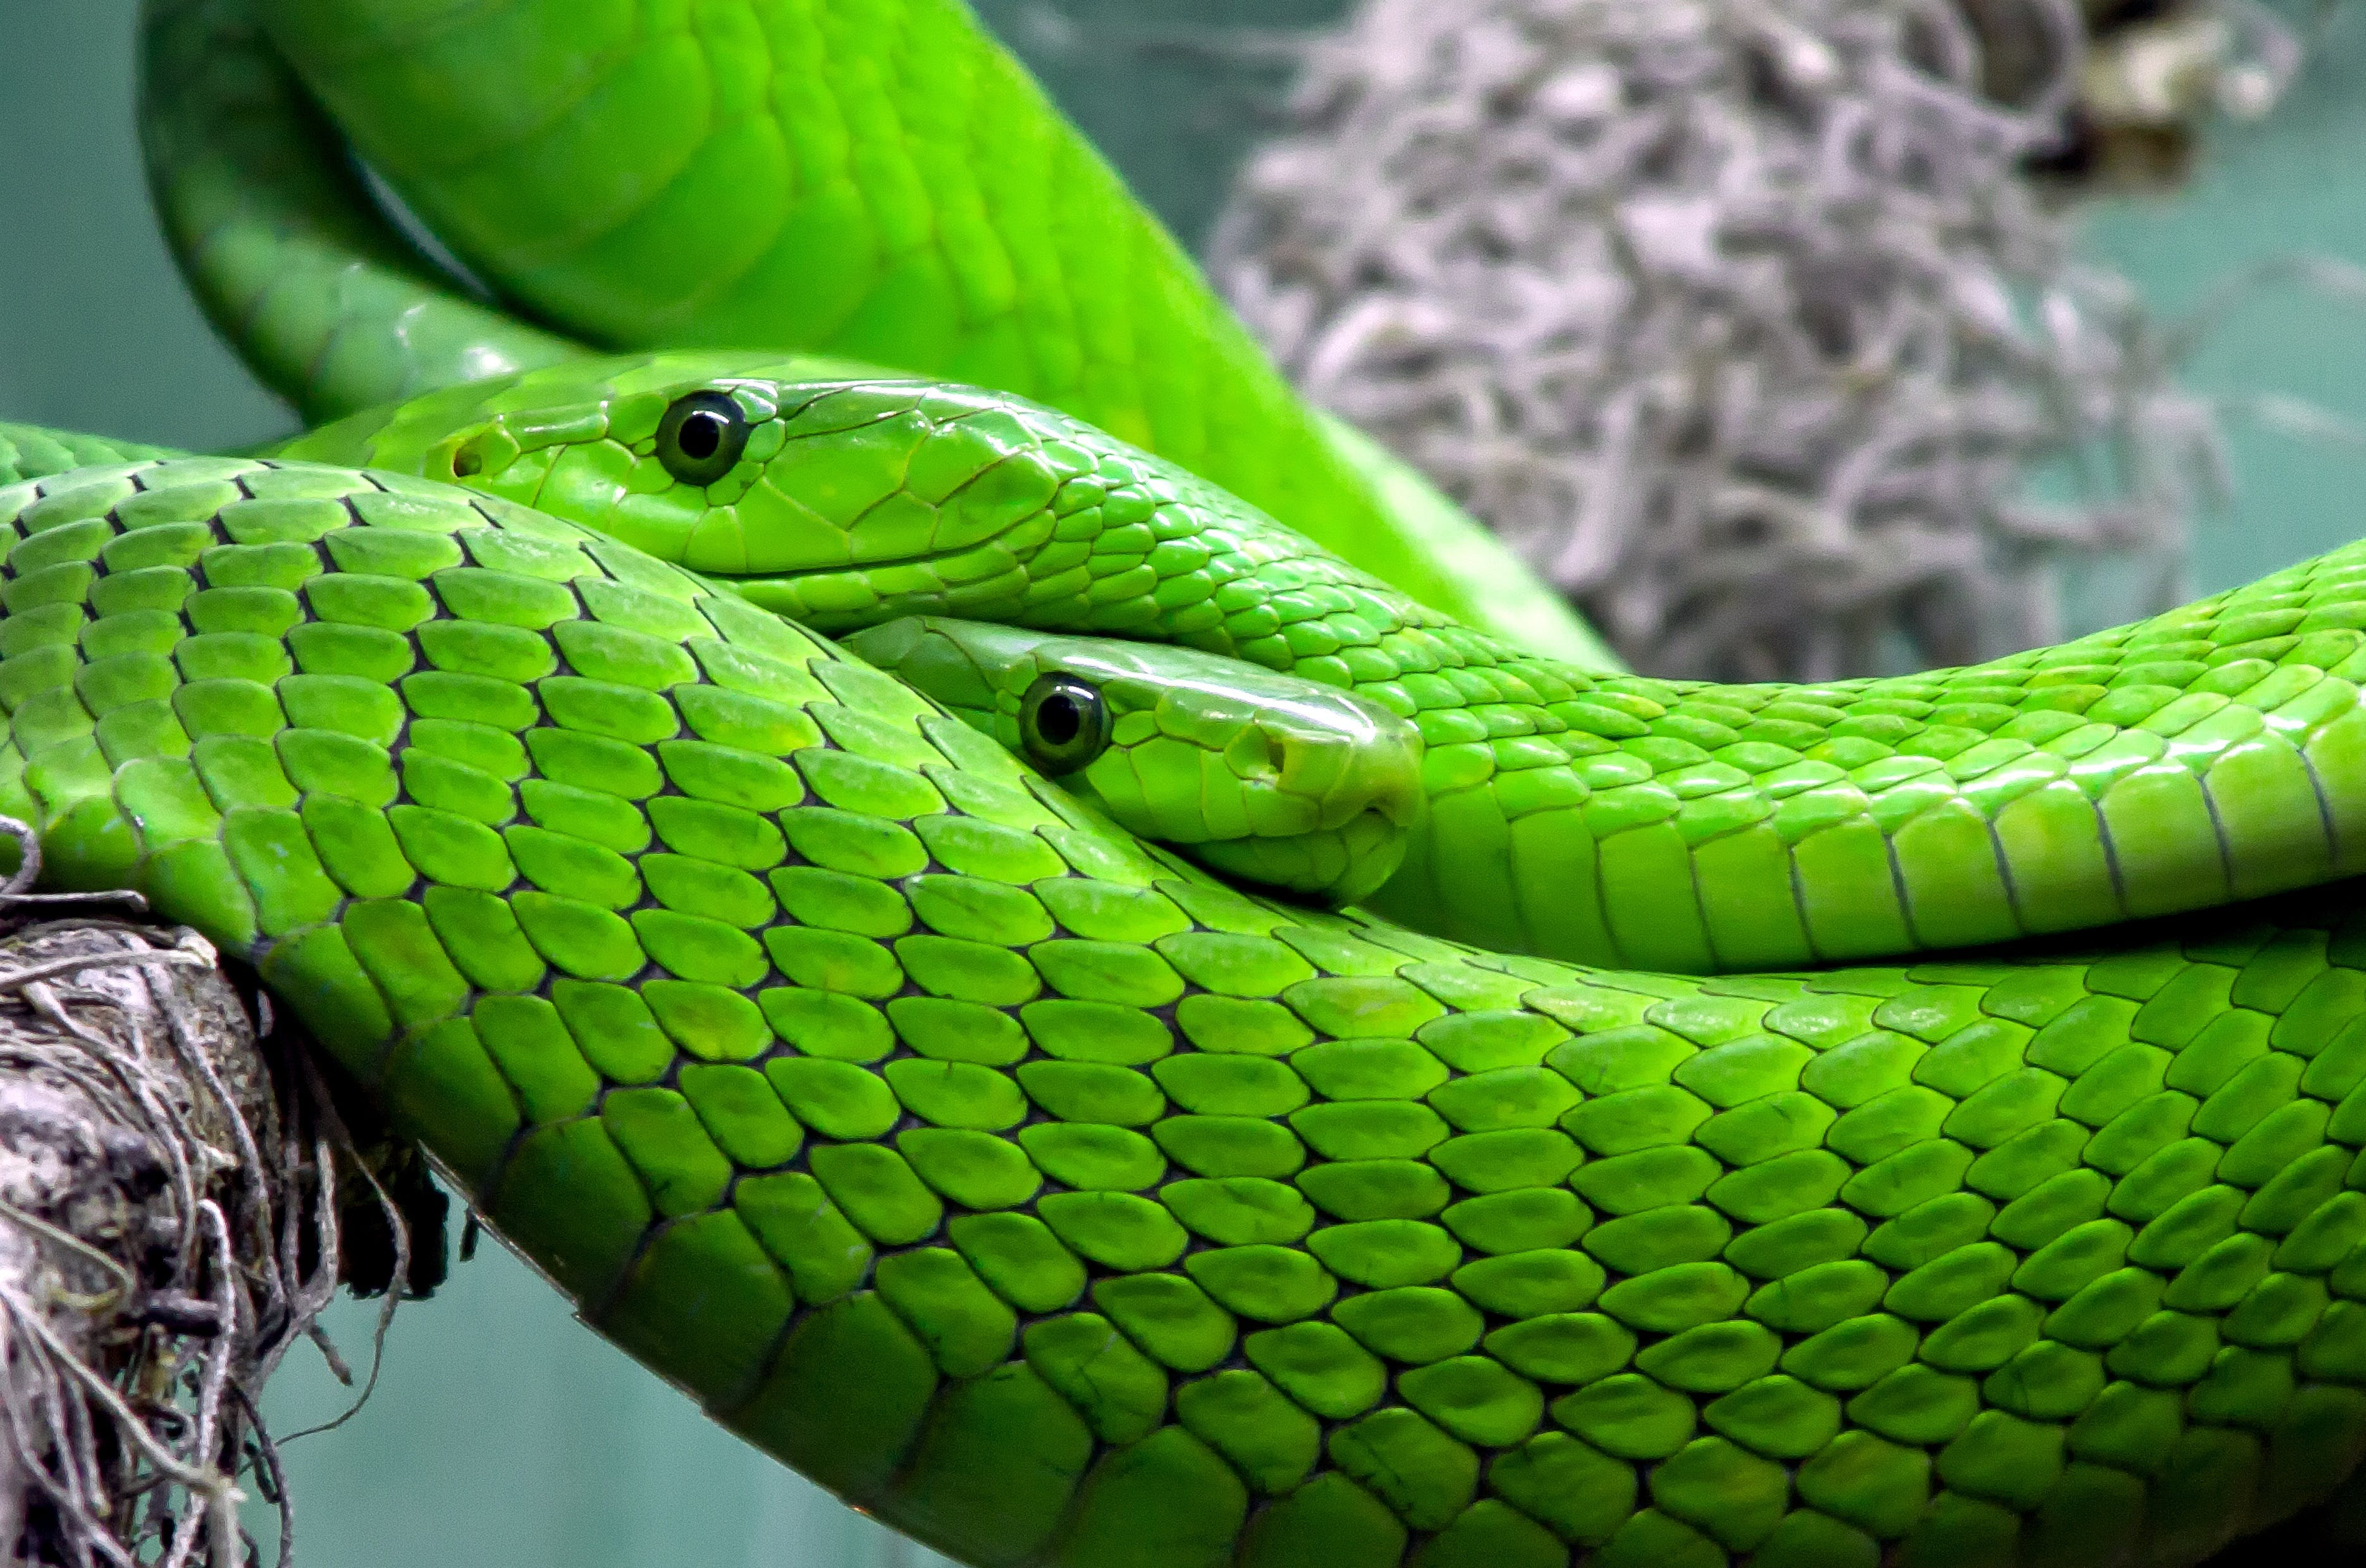 animal, green, green mamba